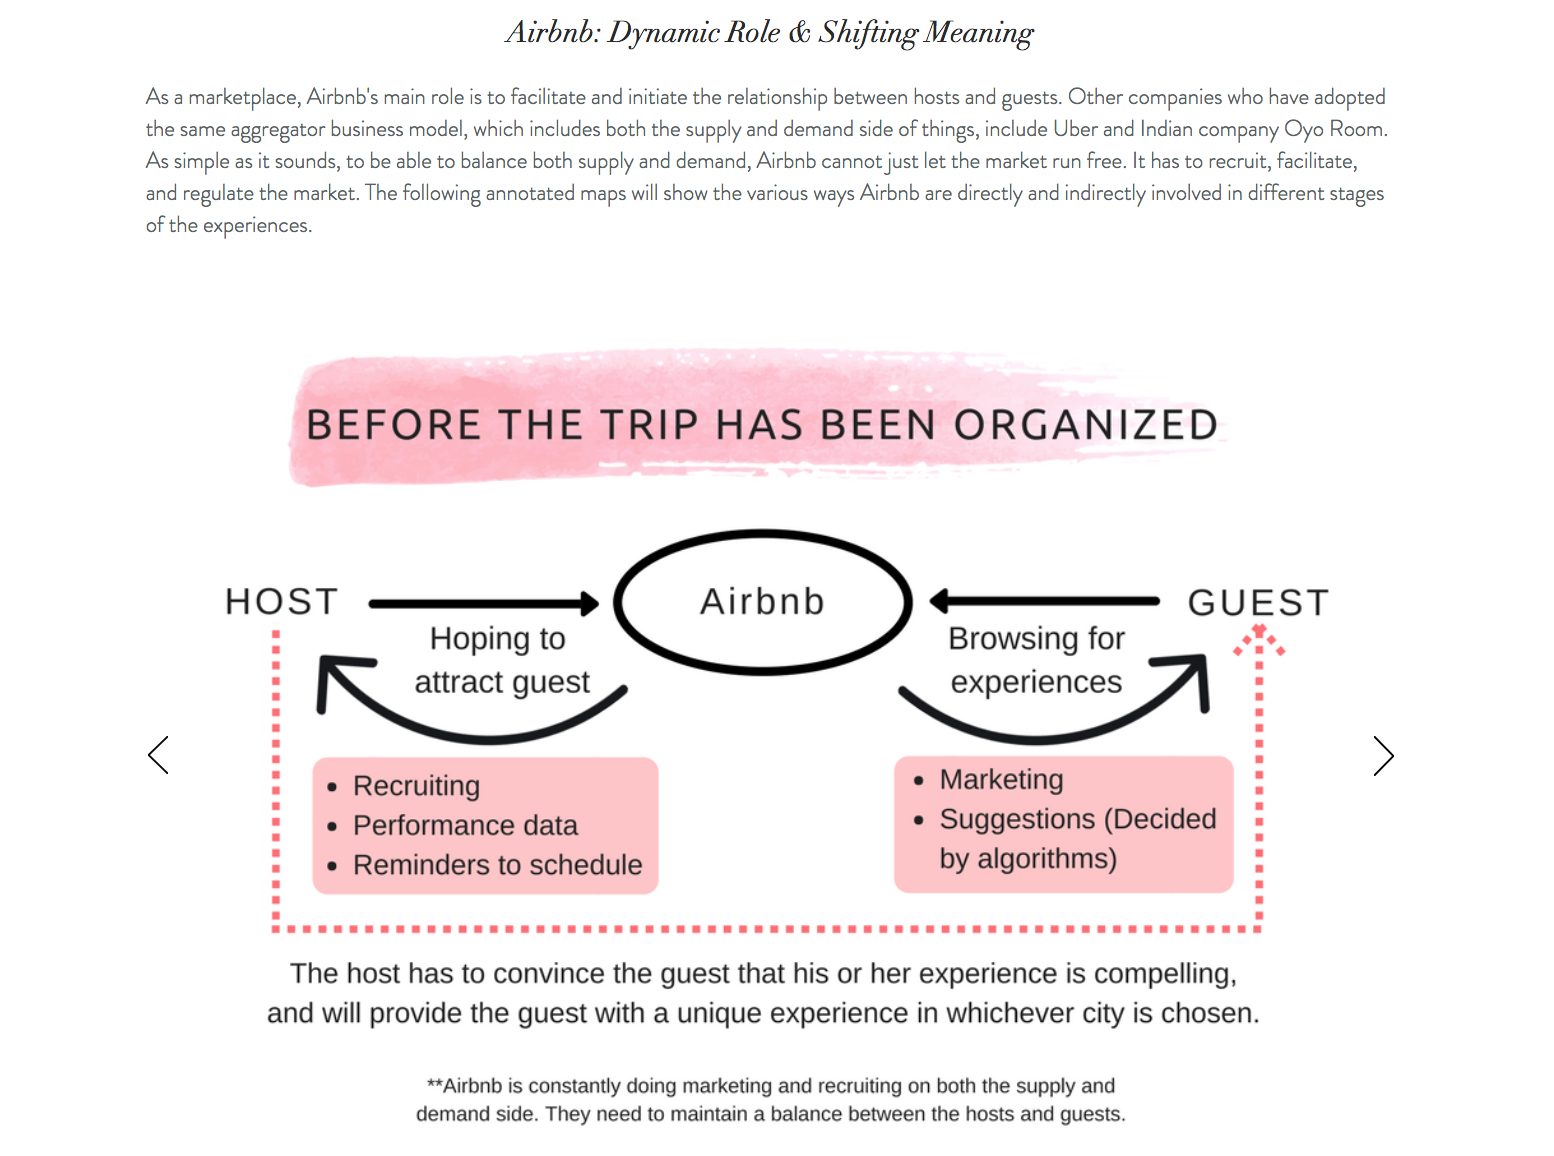 Airbnb relationship